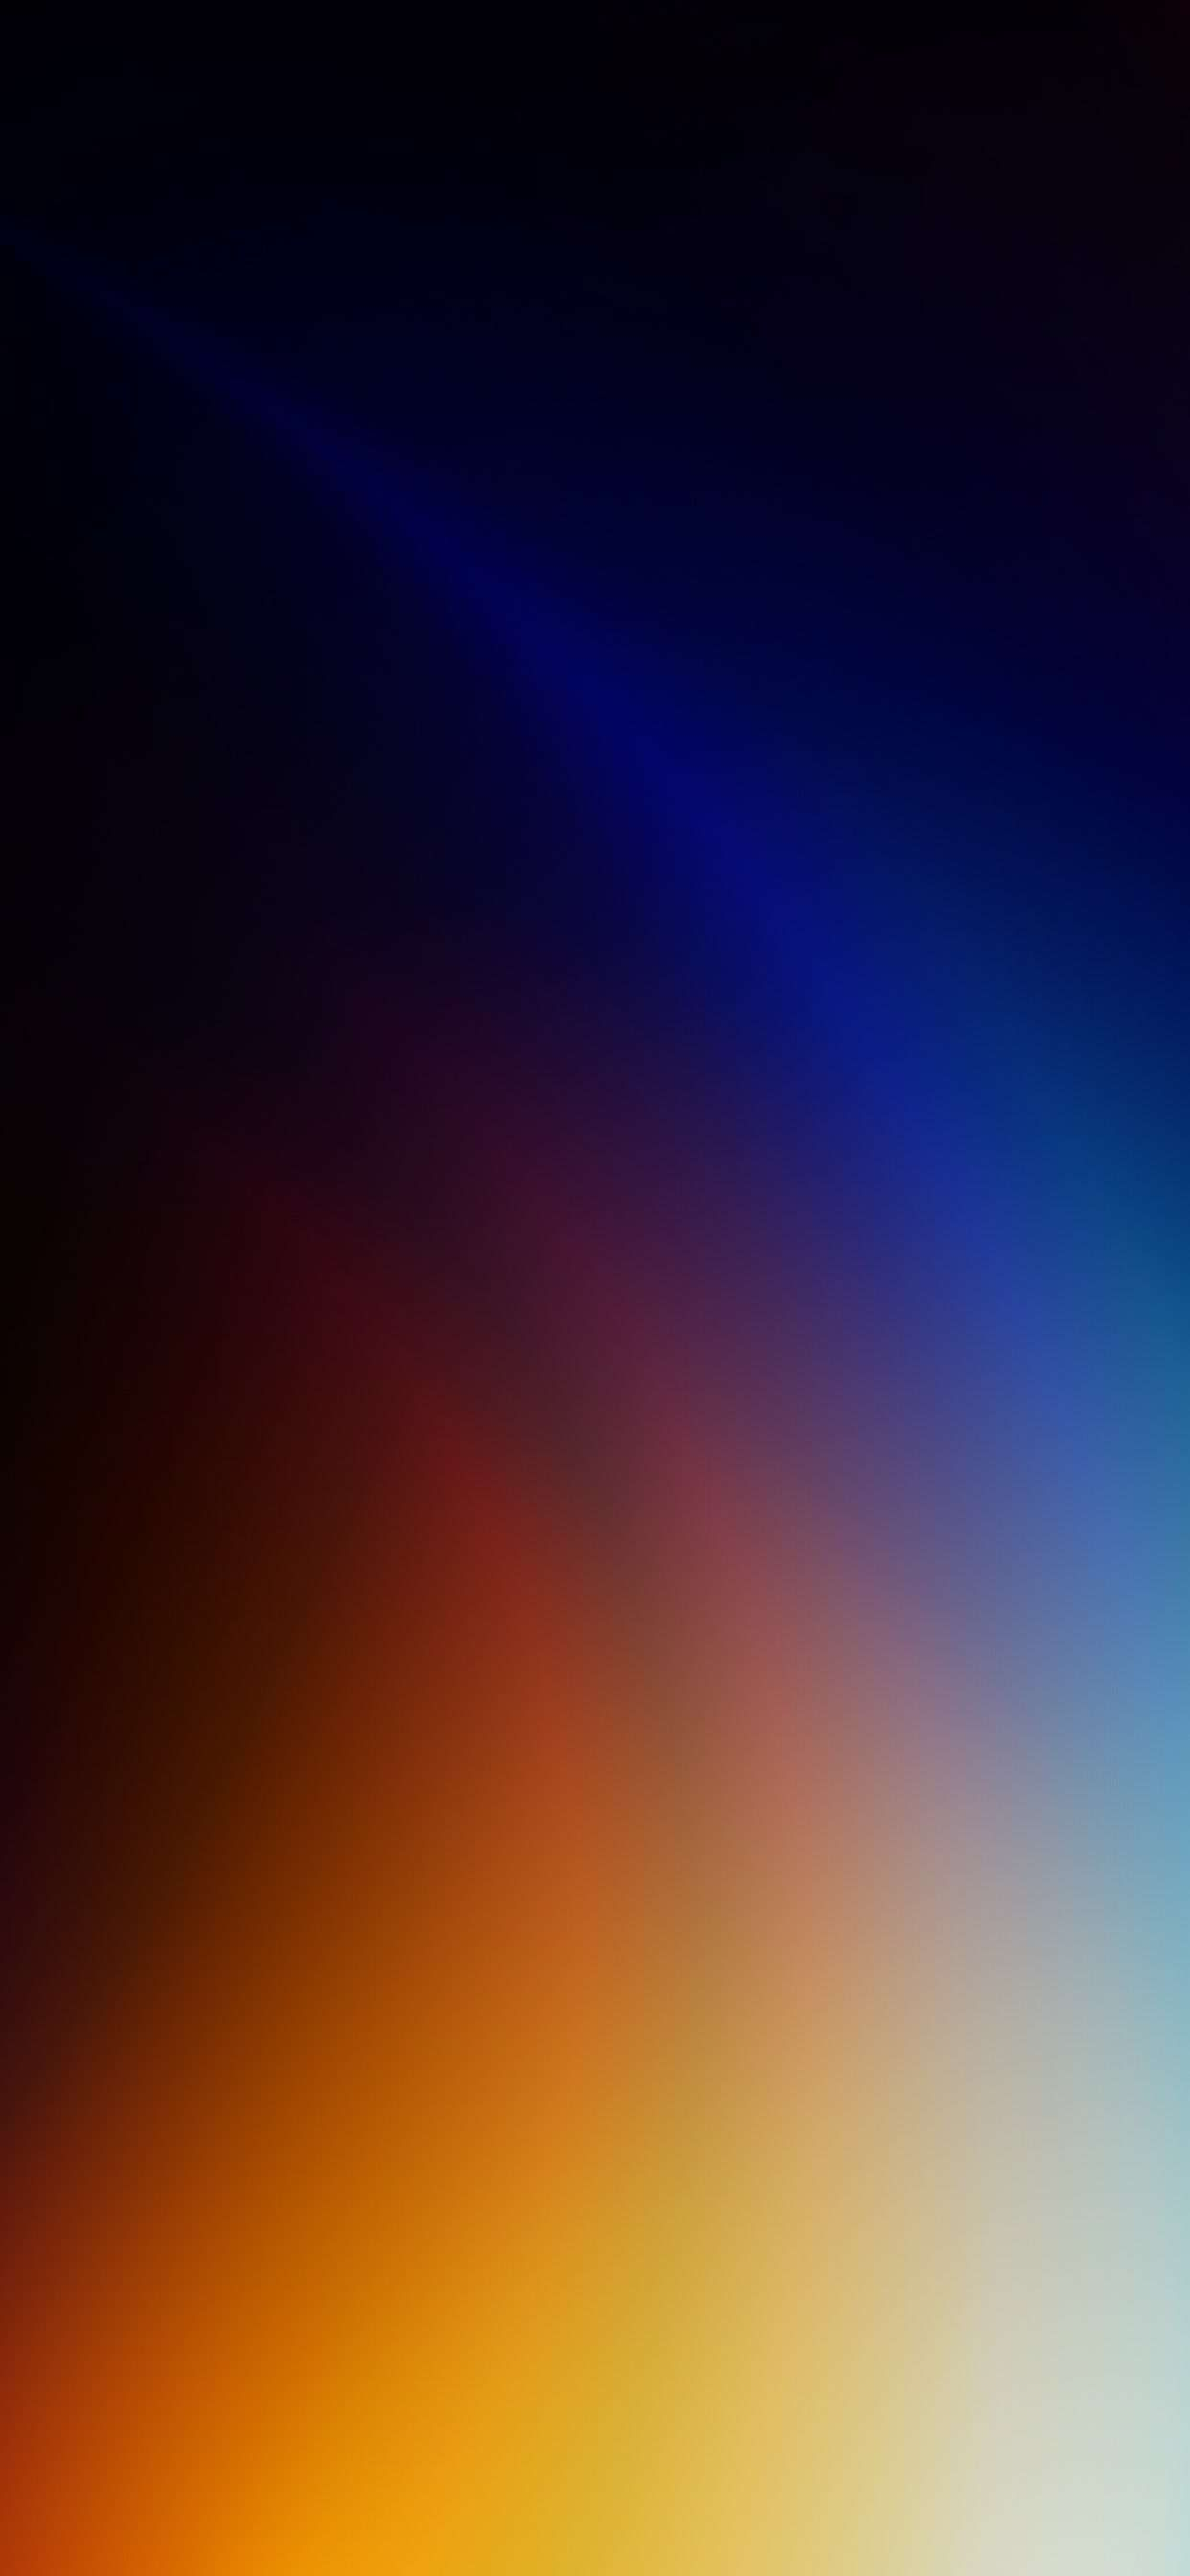 Pin On Vellum Daily Wallpapers